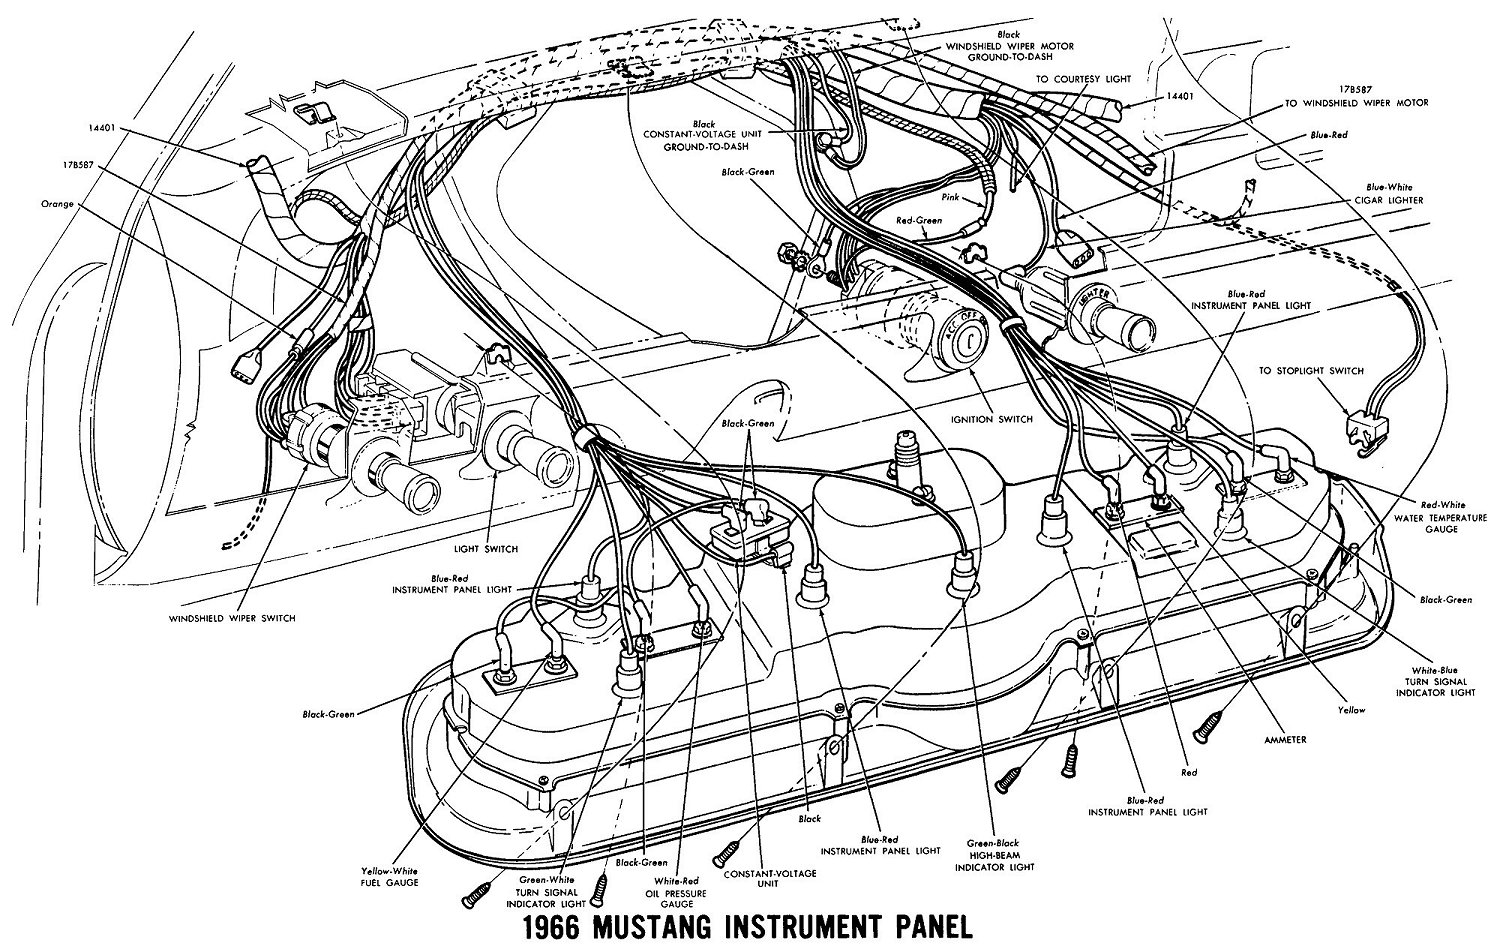 1966 Mustang Wiring Diagrams on 70 nova wiring diagram